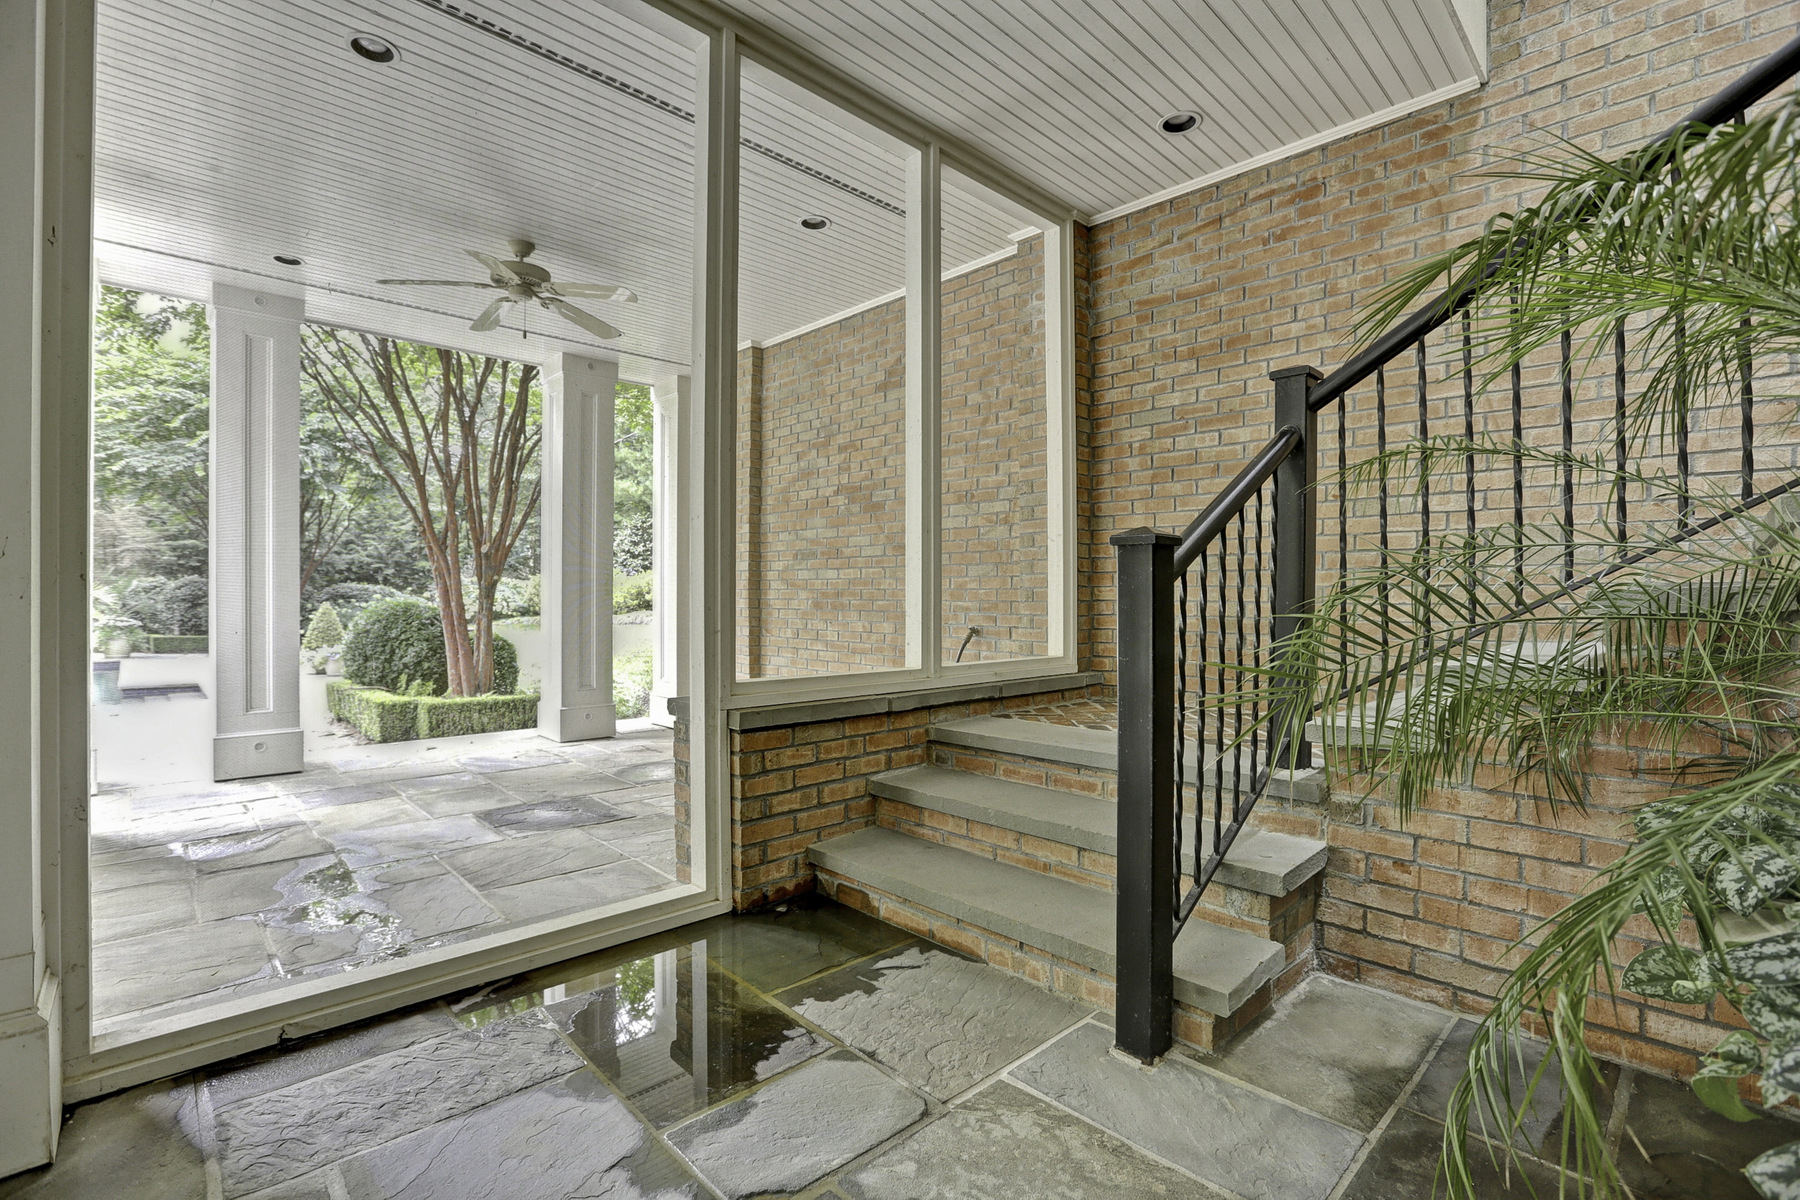 Additional photo for property listing at Renovated Brick Home In Sandy Springs With Pool And English Gardens 5660 Glen Errol Road Atlanta, Γεωργια 30327 Ηνωμενεσ Πολιτειεσ